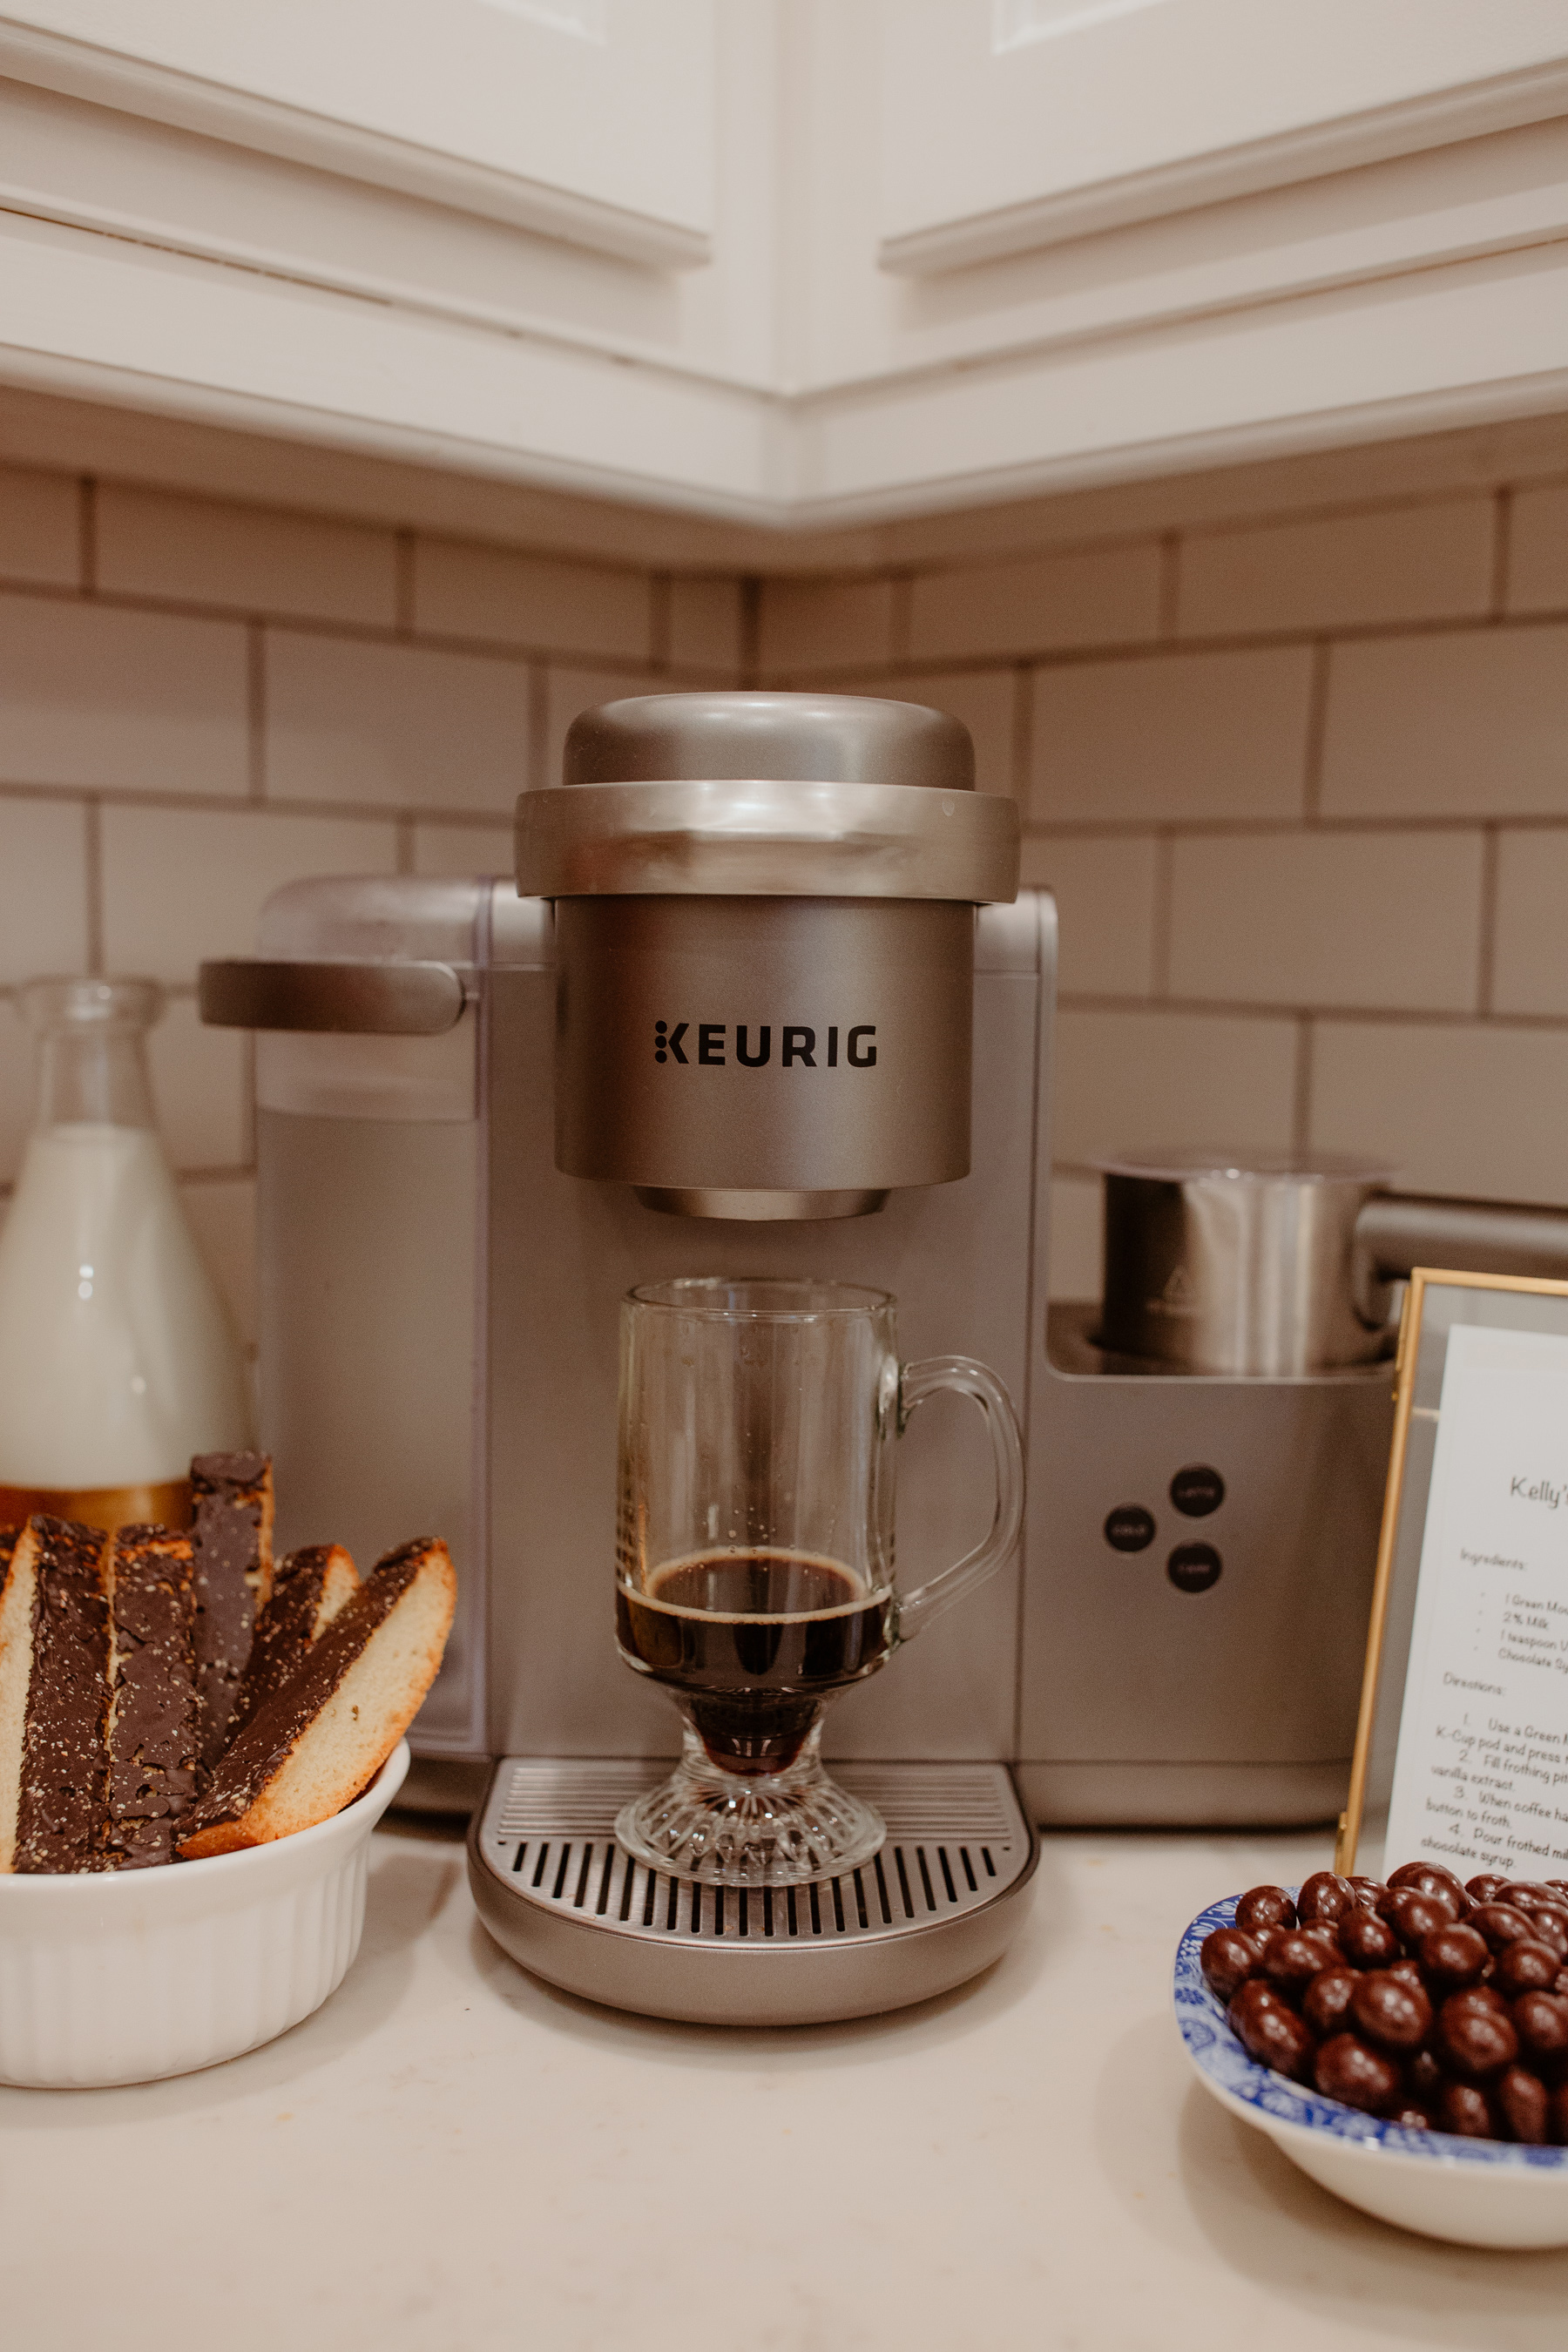 Keurig Special Edition K-Café™ Single Serve Coffee, Latte & Cappuccino Maker, Keurig